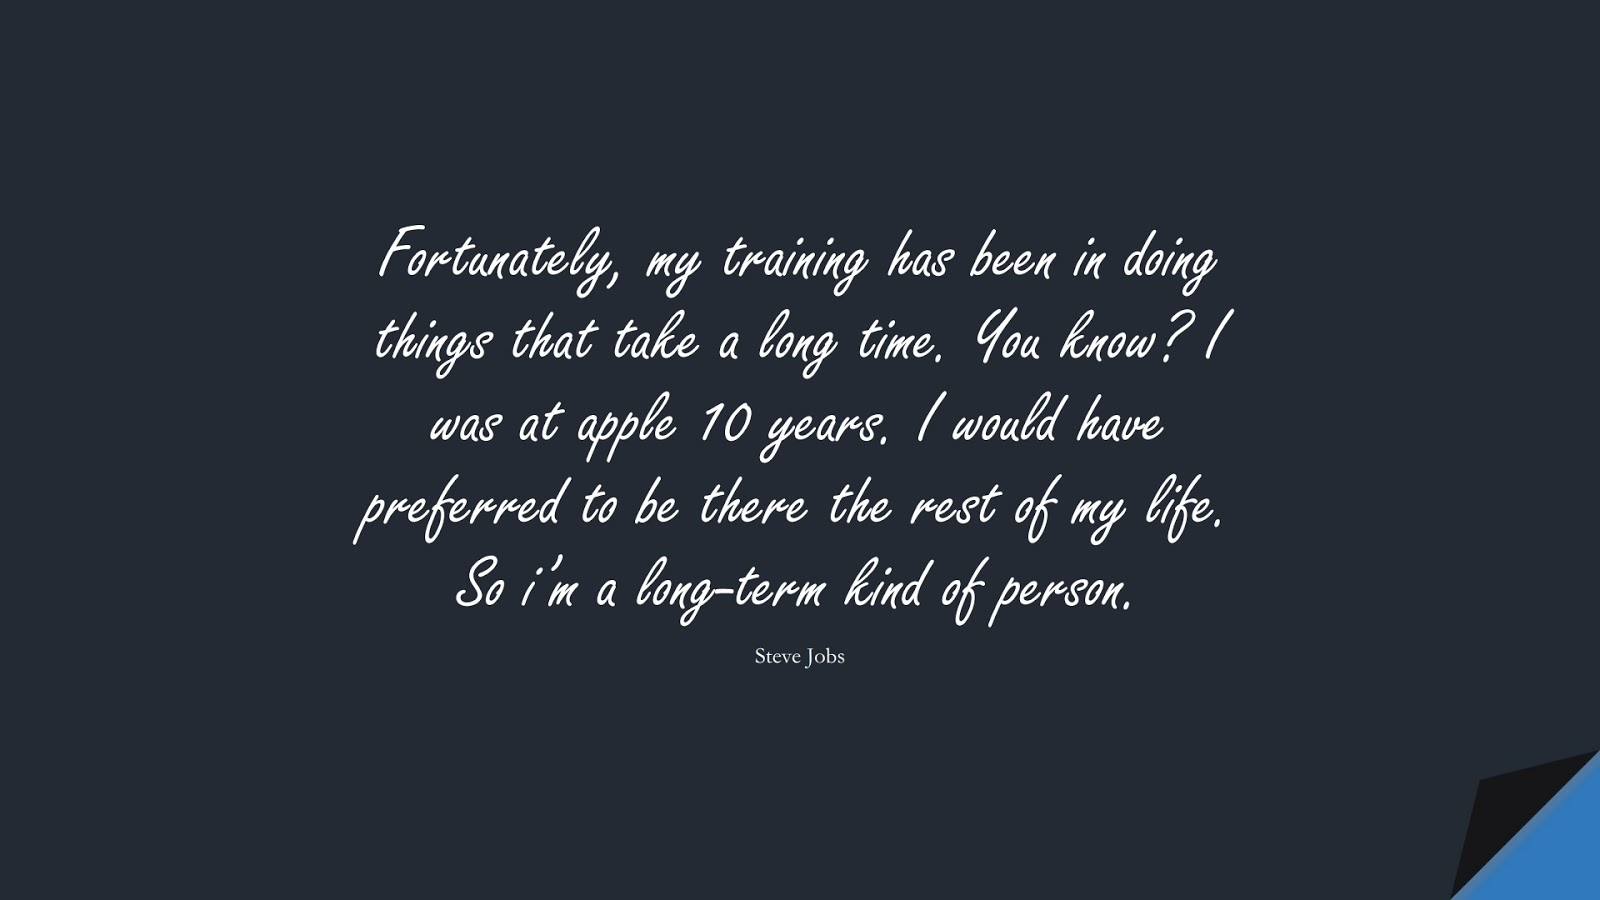 Fortunately, my training has been in doing things that take a long time. You know? I was at apple 10 years. I would have preferred to be there the rest of my life. So i'm a long-term kind of person. (Steve Jobs);  #SteveJobsQuotes